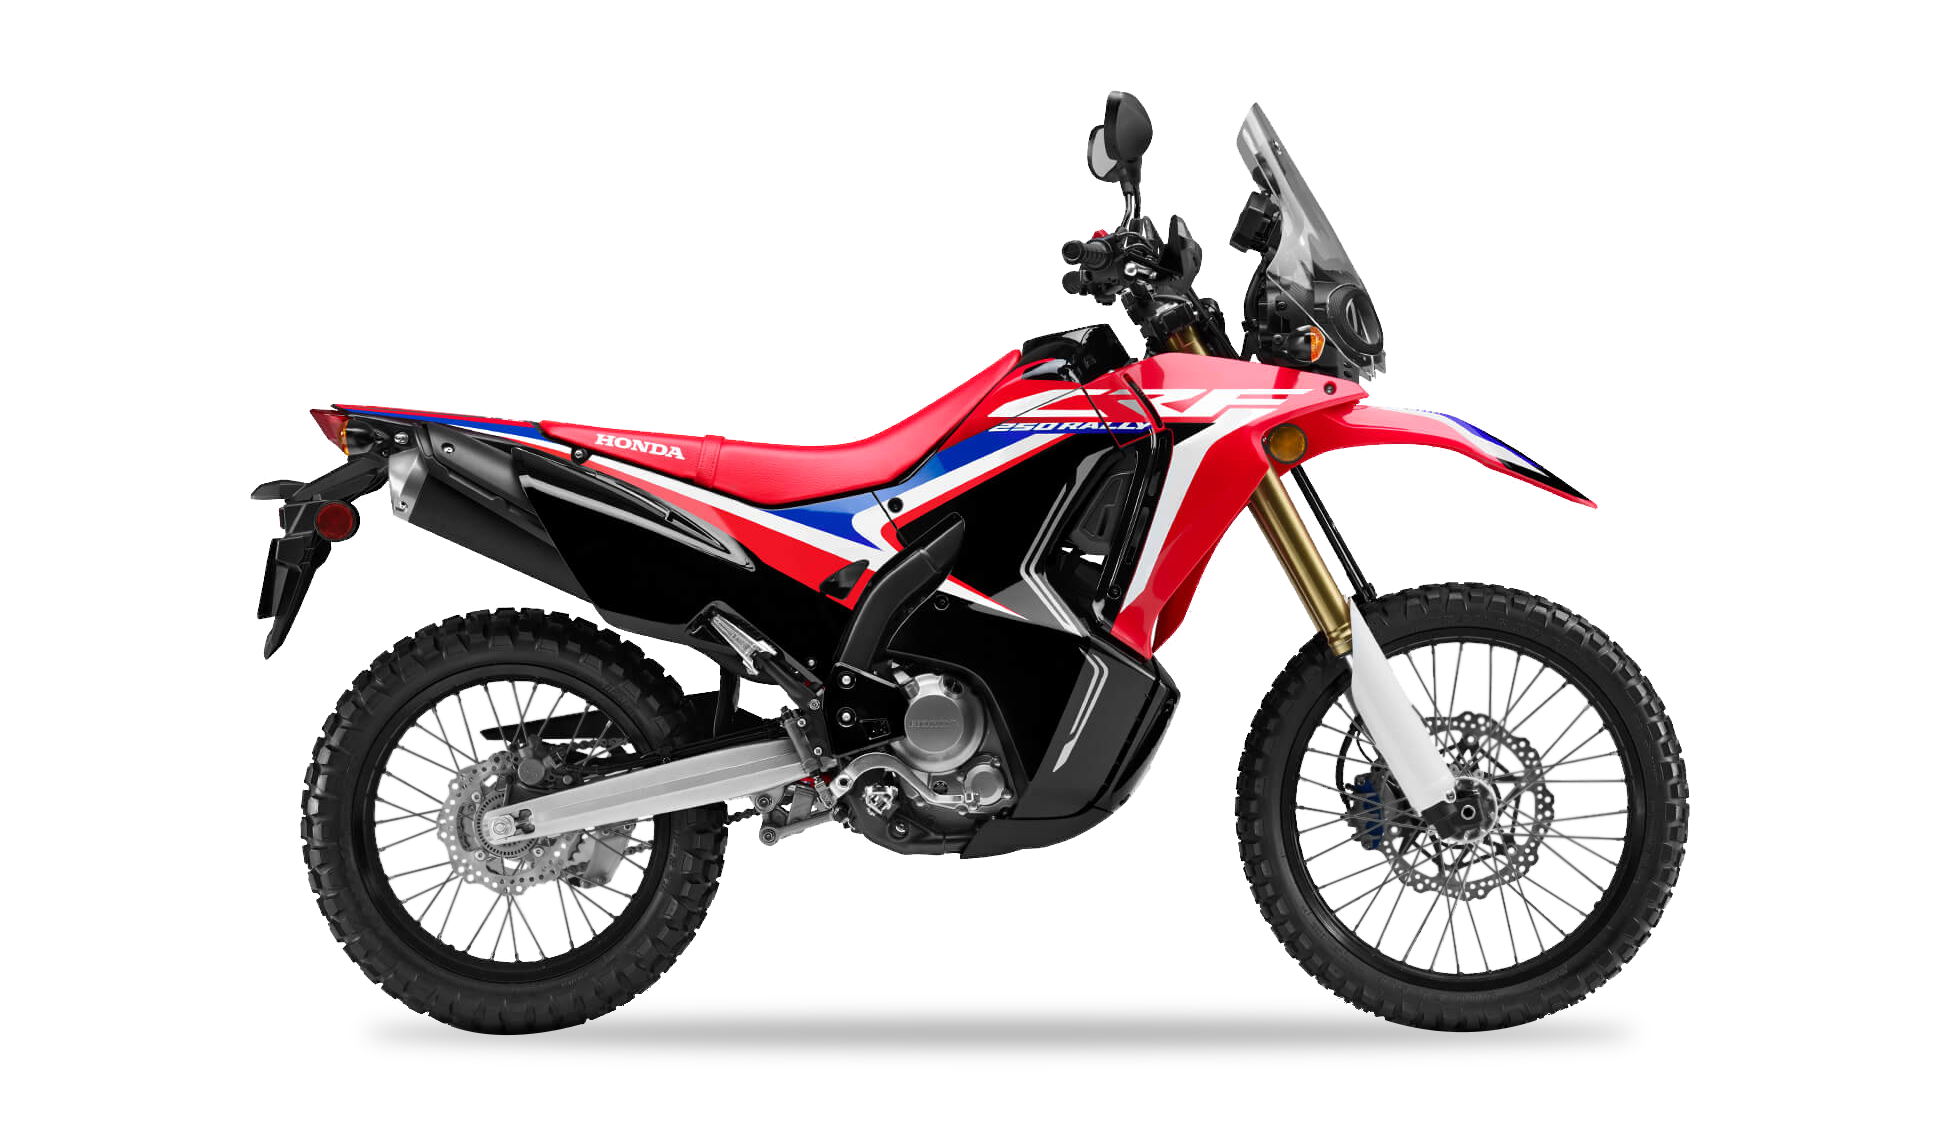 2018 CRF250L Rally ABS